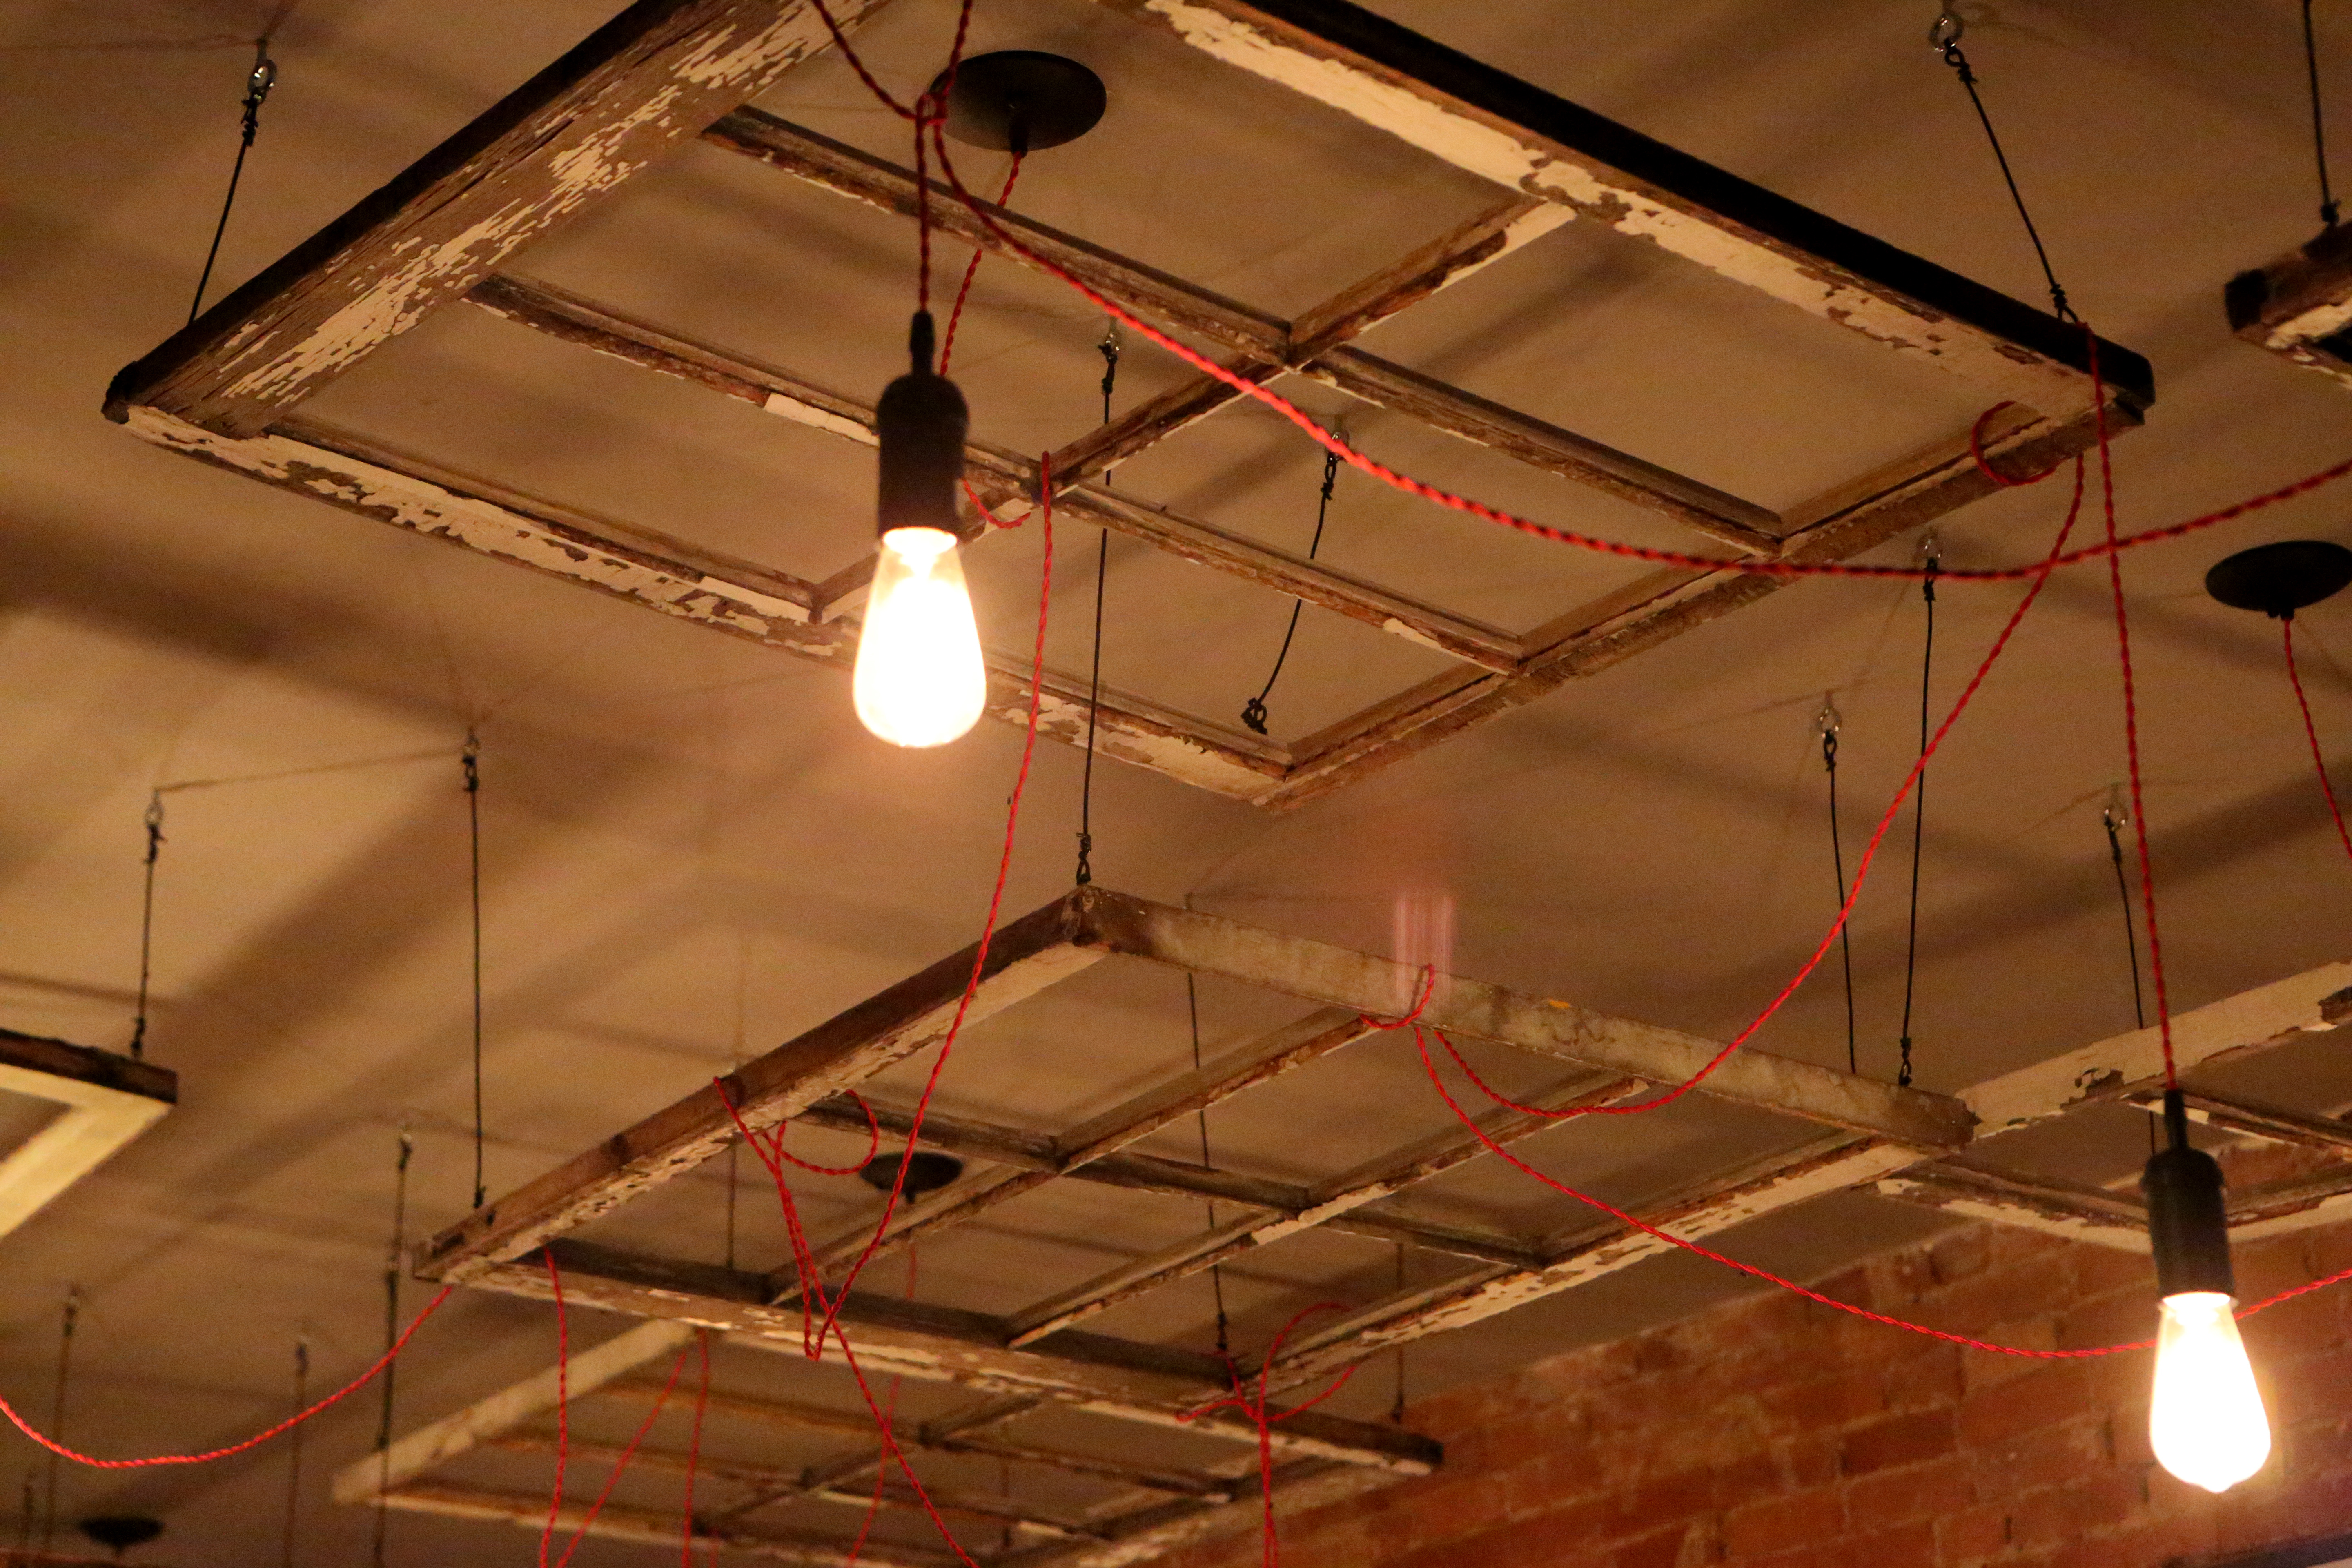 Restaurant Lights, Bulbs, Ceiling, Construction, Electricity, HQ Photo